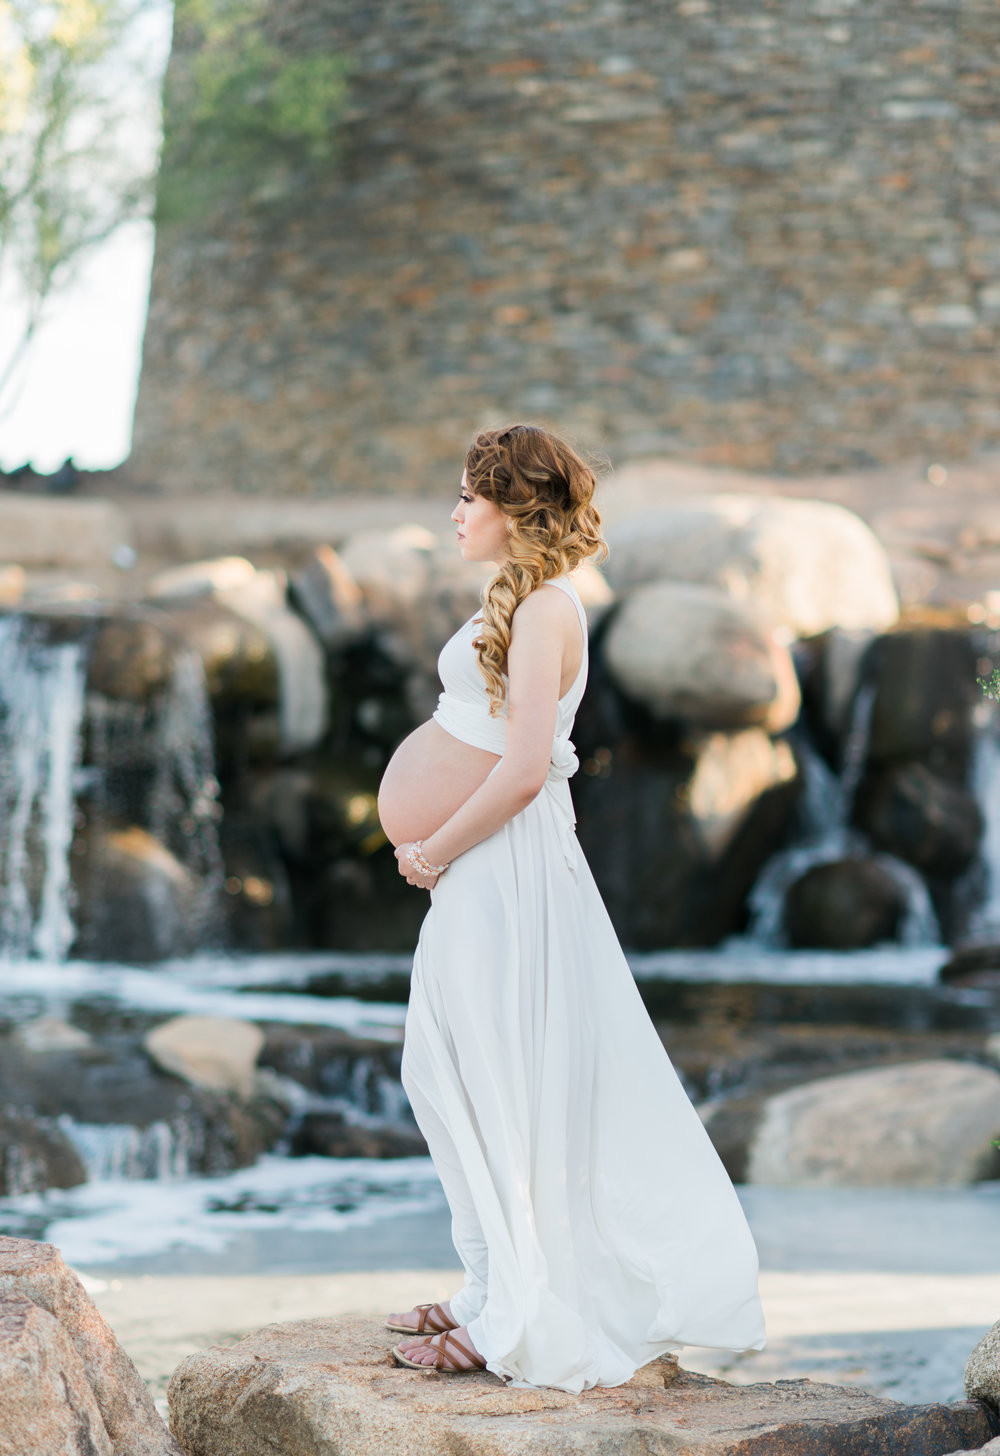 Glamorous Maternity Photos - Red Formal Maternity Dress - White Maternity Photos Dress -- Lisa Soroko Photography